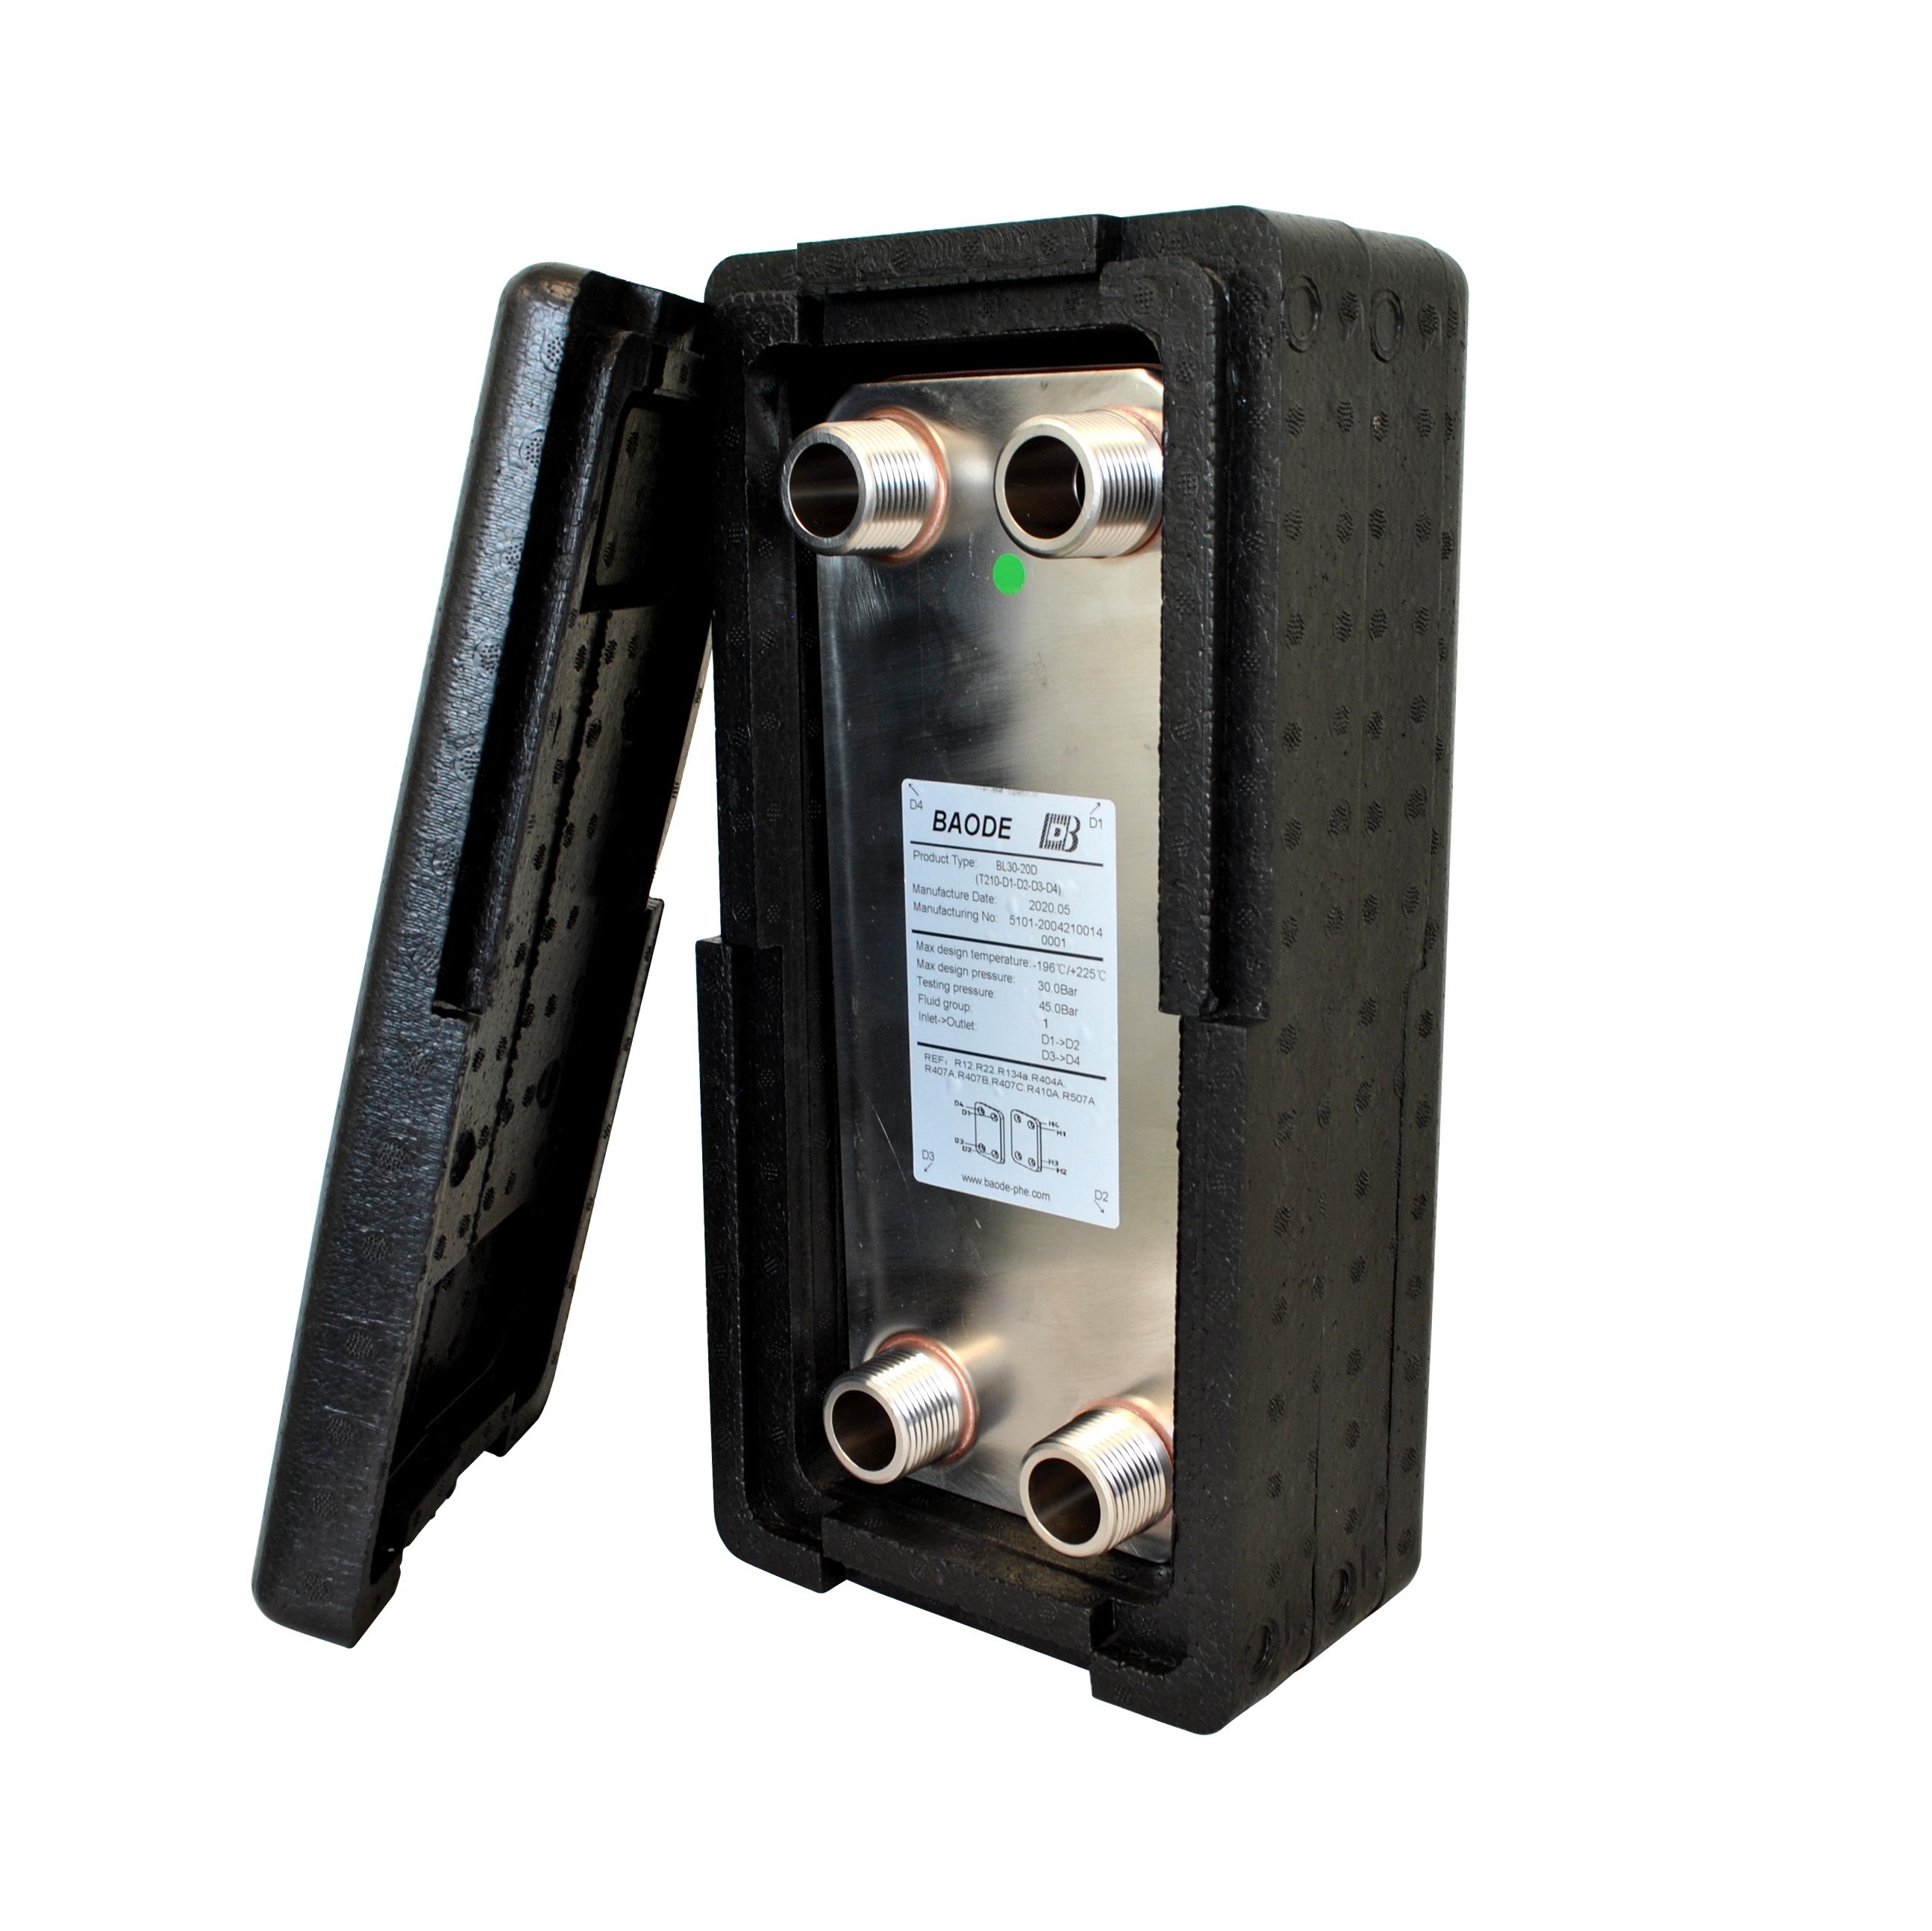 Baode BL26C-20 plate heat exchanger with insulation